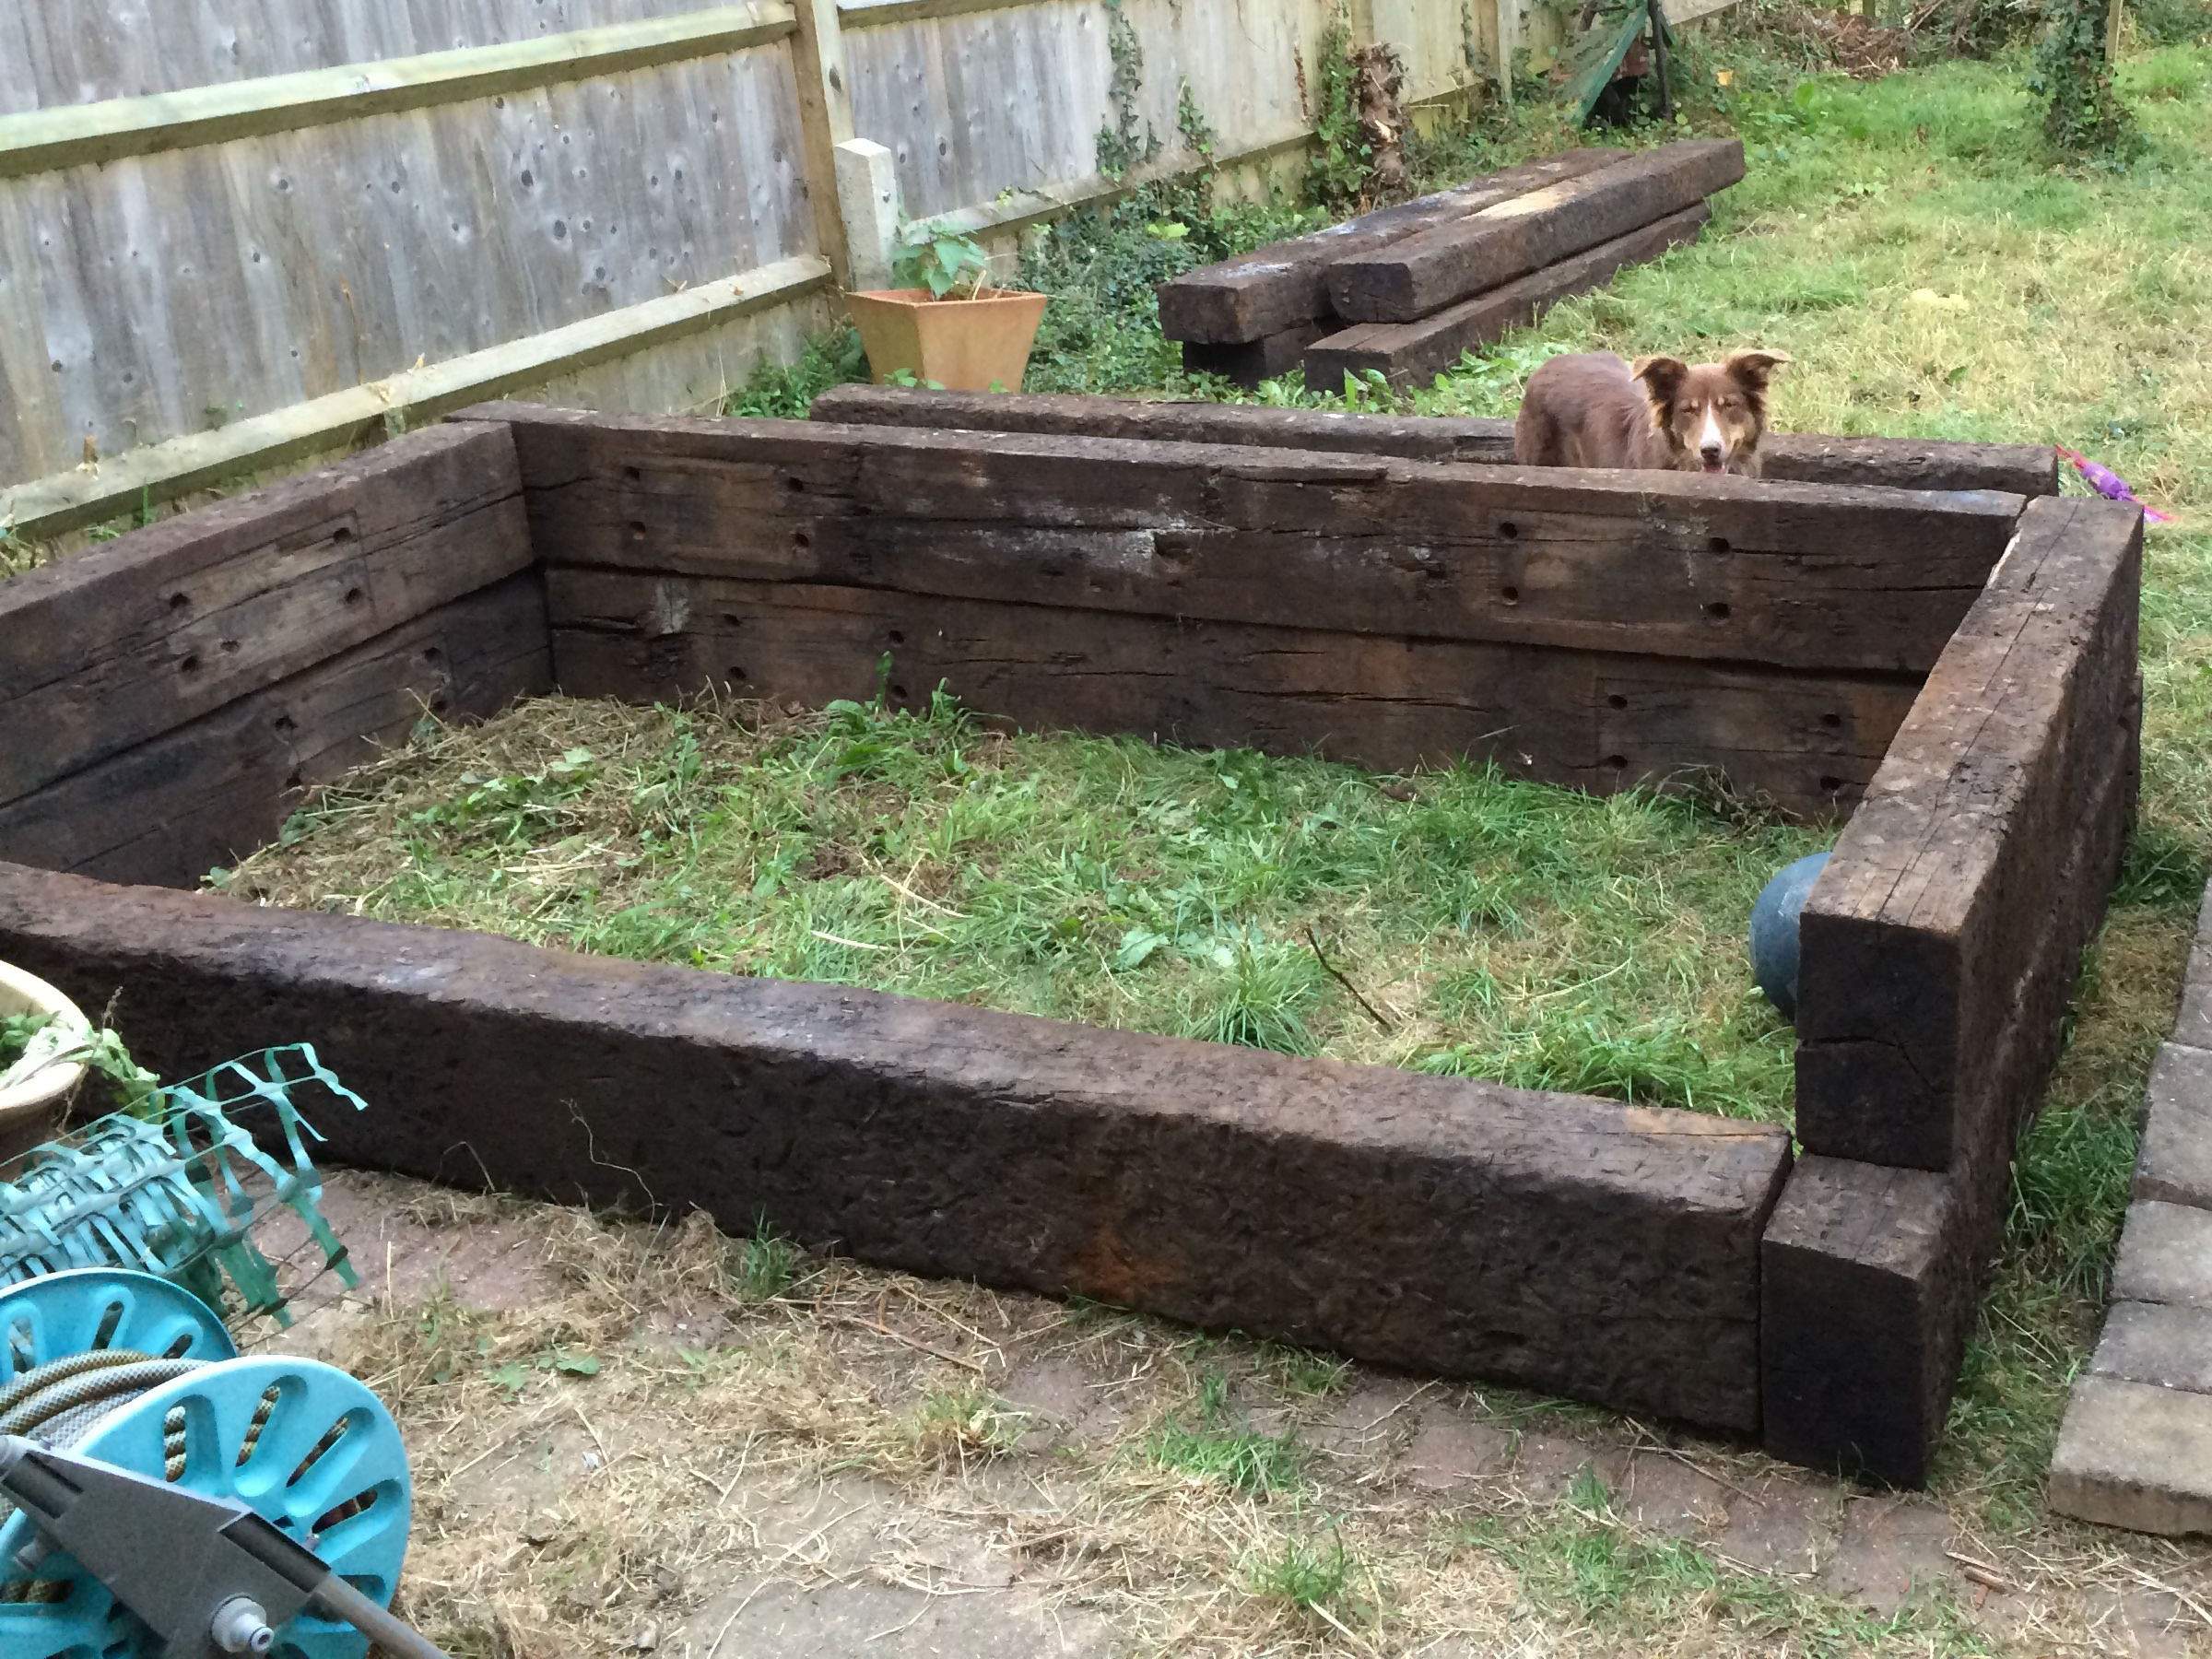 woodworking and waist amazing own doors barn of demo beds design build cedar the for reclaimed wood garden your make plans tall planting woodend beautiful bed high kit raised